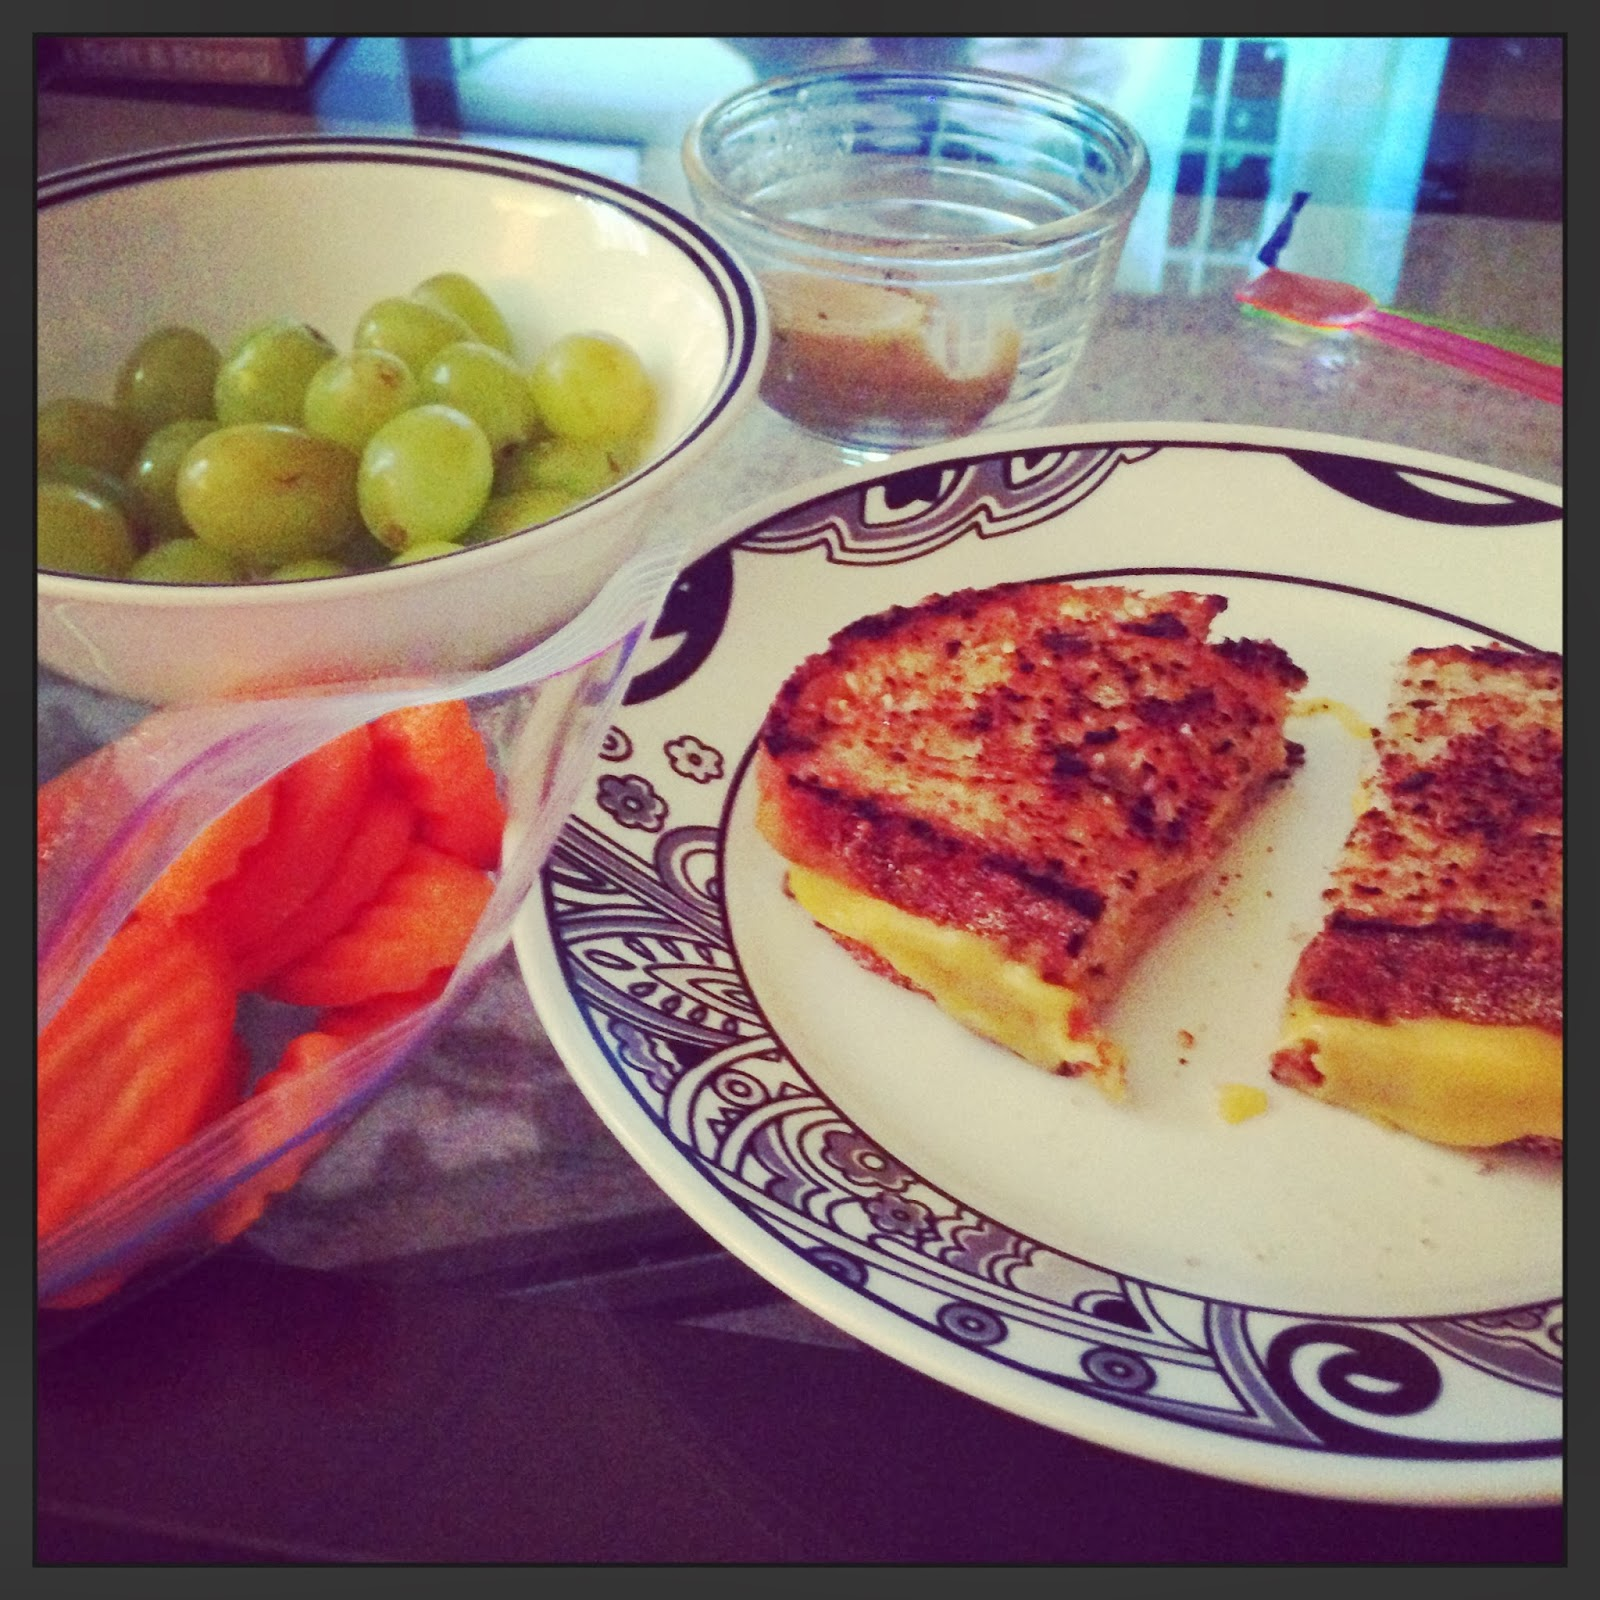 healthy girly life: Grilled cheese, carrots, grapes and hummus